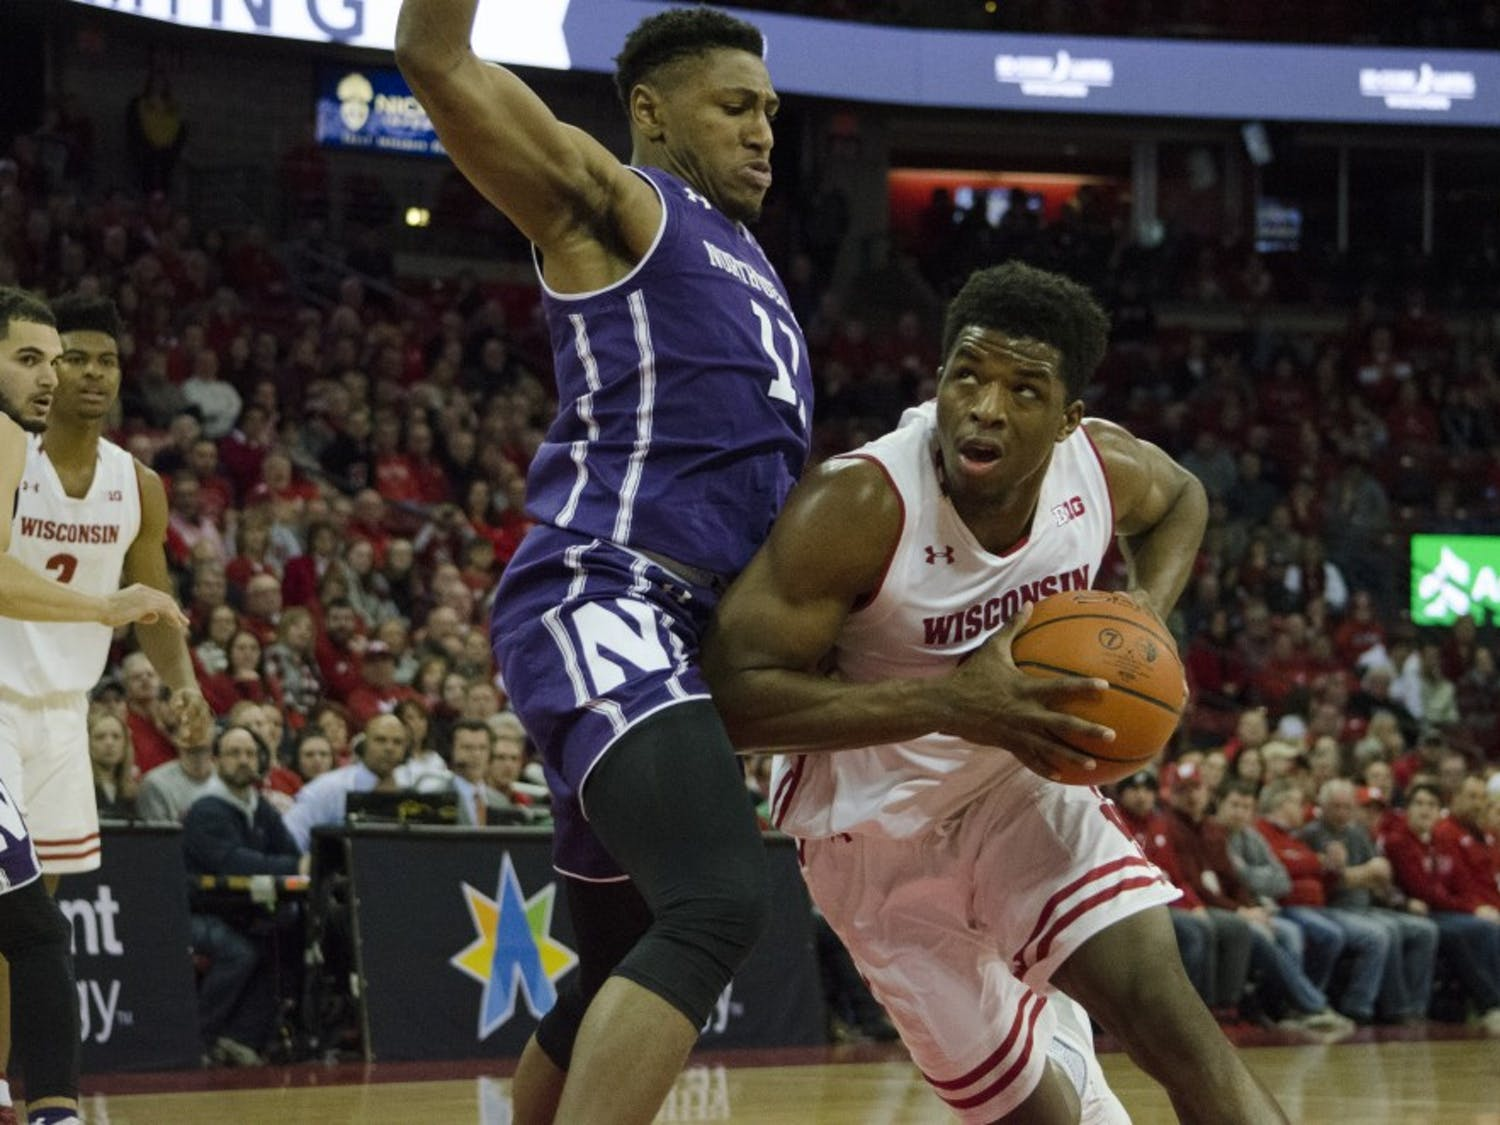 Junior forward Khalil Iverson scored 16 points as Wisconsin knocked off Northwestern, 70-64.